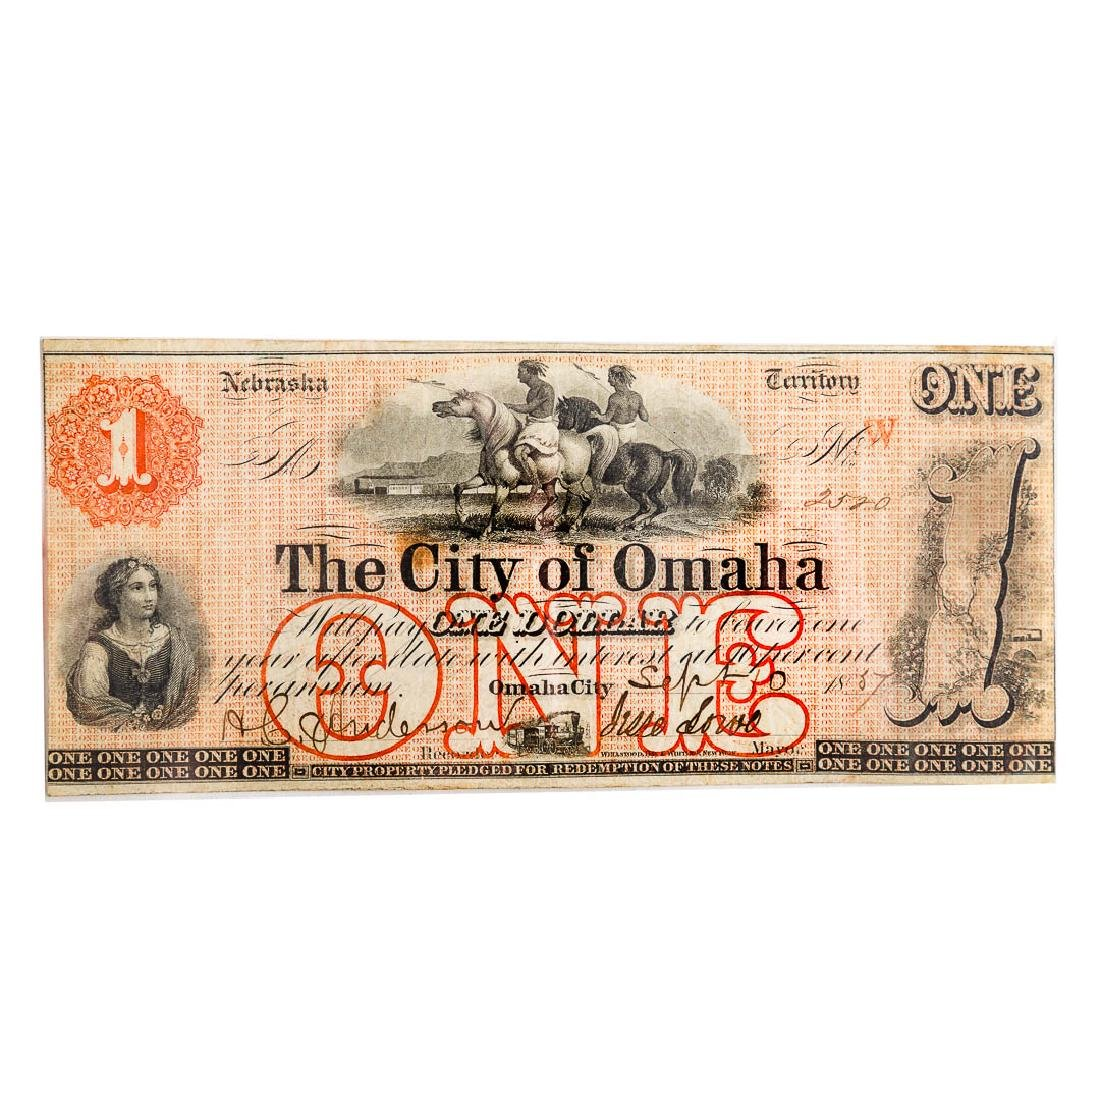 [US] 1857 $1 City of Omaha, Nebraska Territory AU+